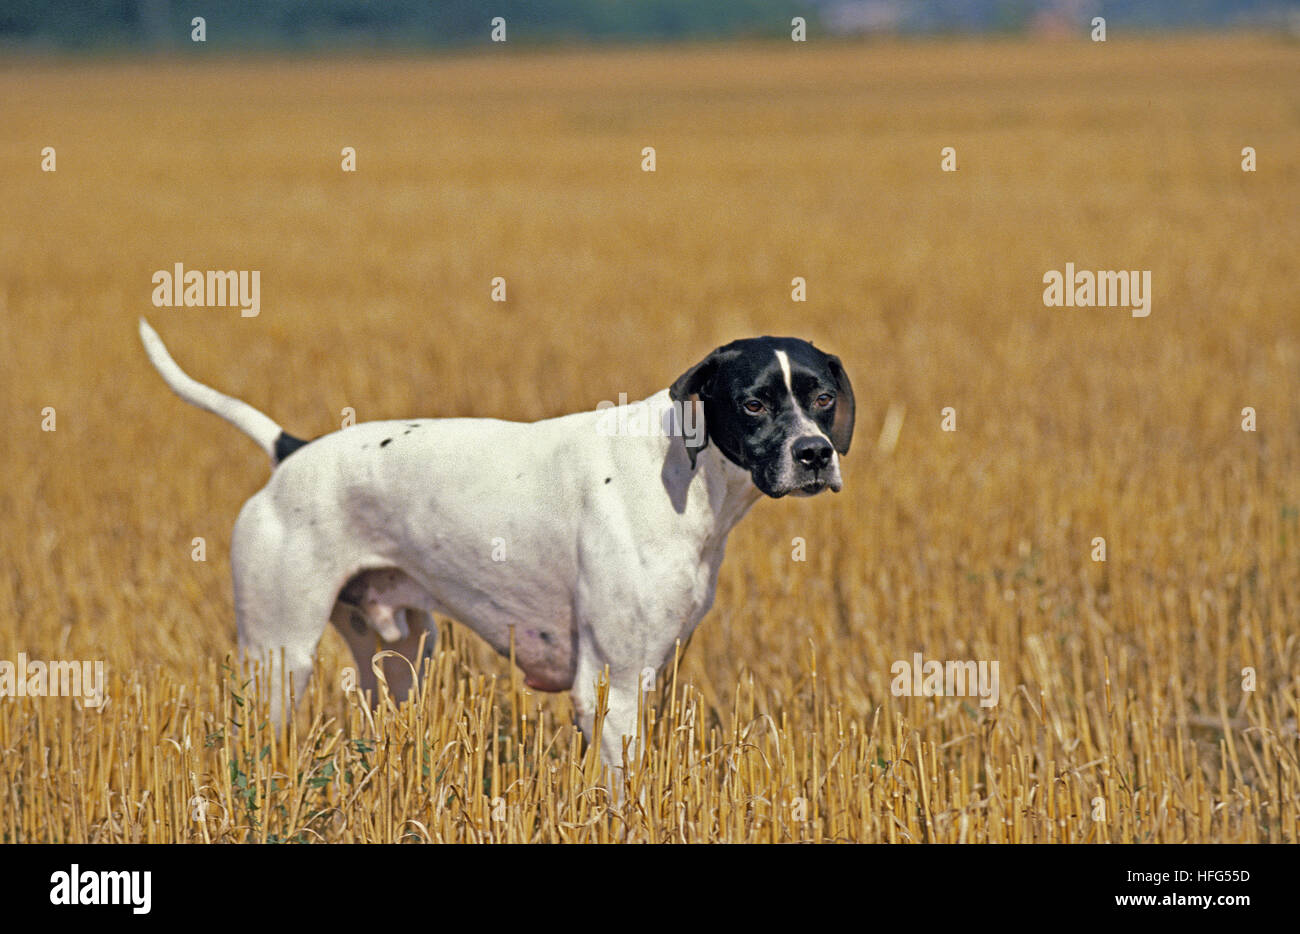 Pointer Dog, Male standing in Wheat's Field - Stock Image